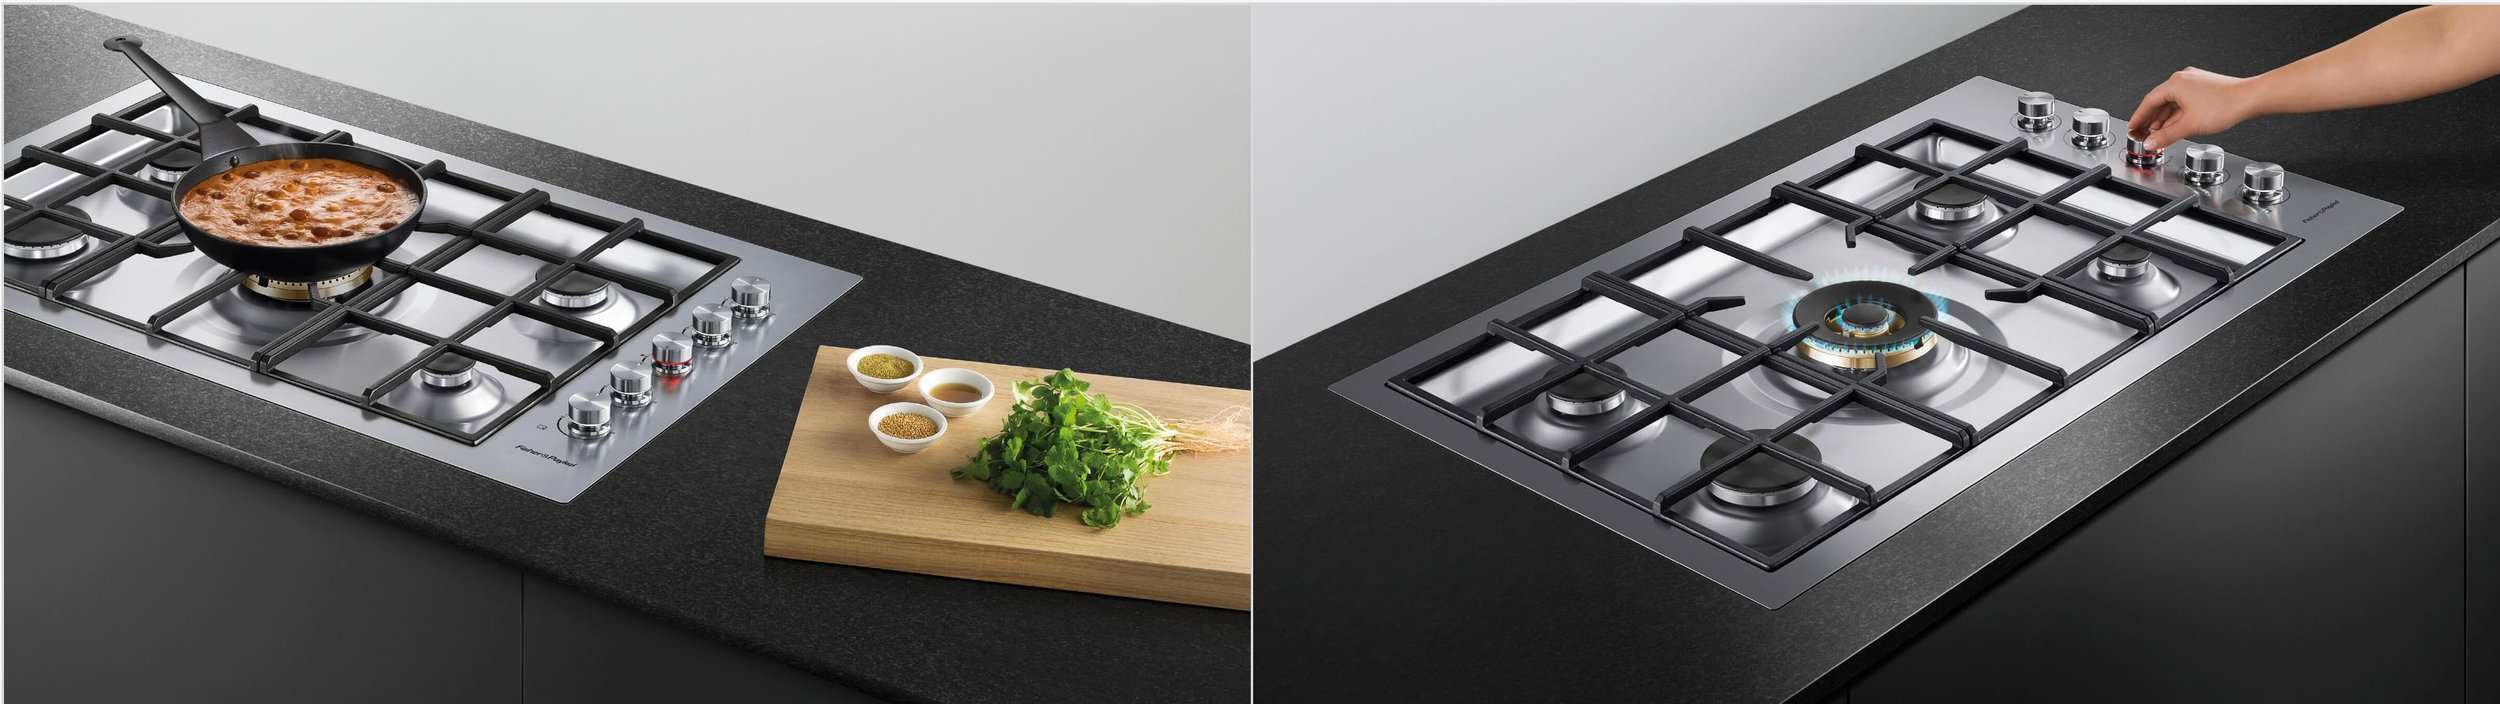 fisher and paykel flush cooktop